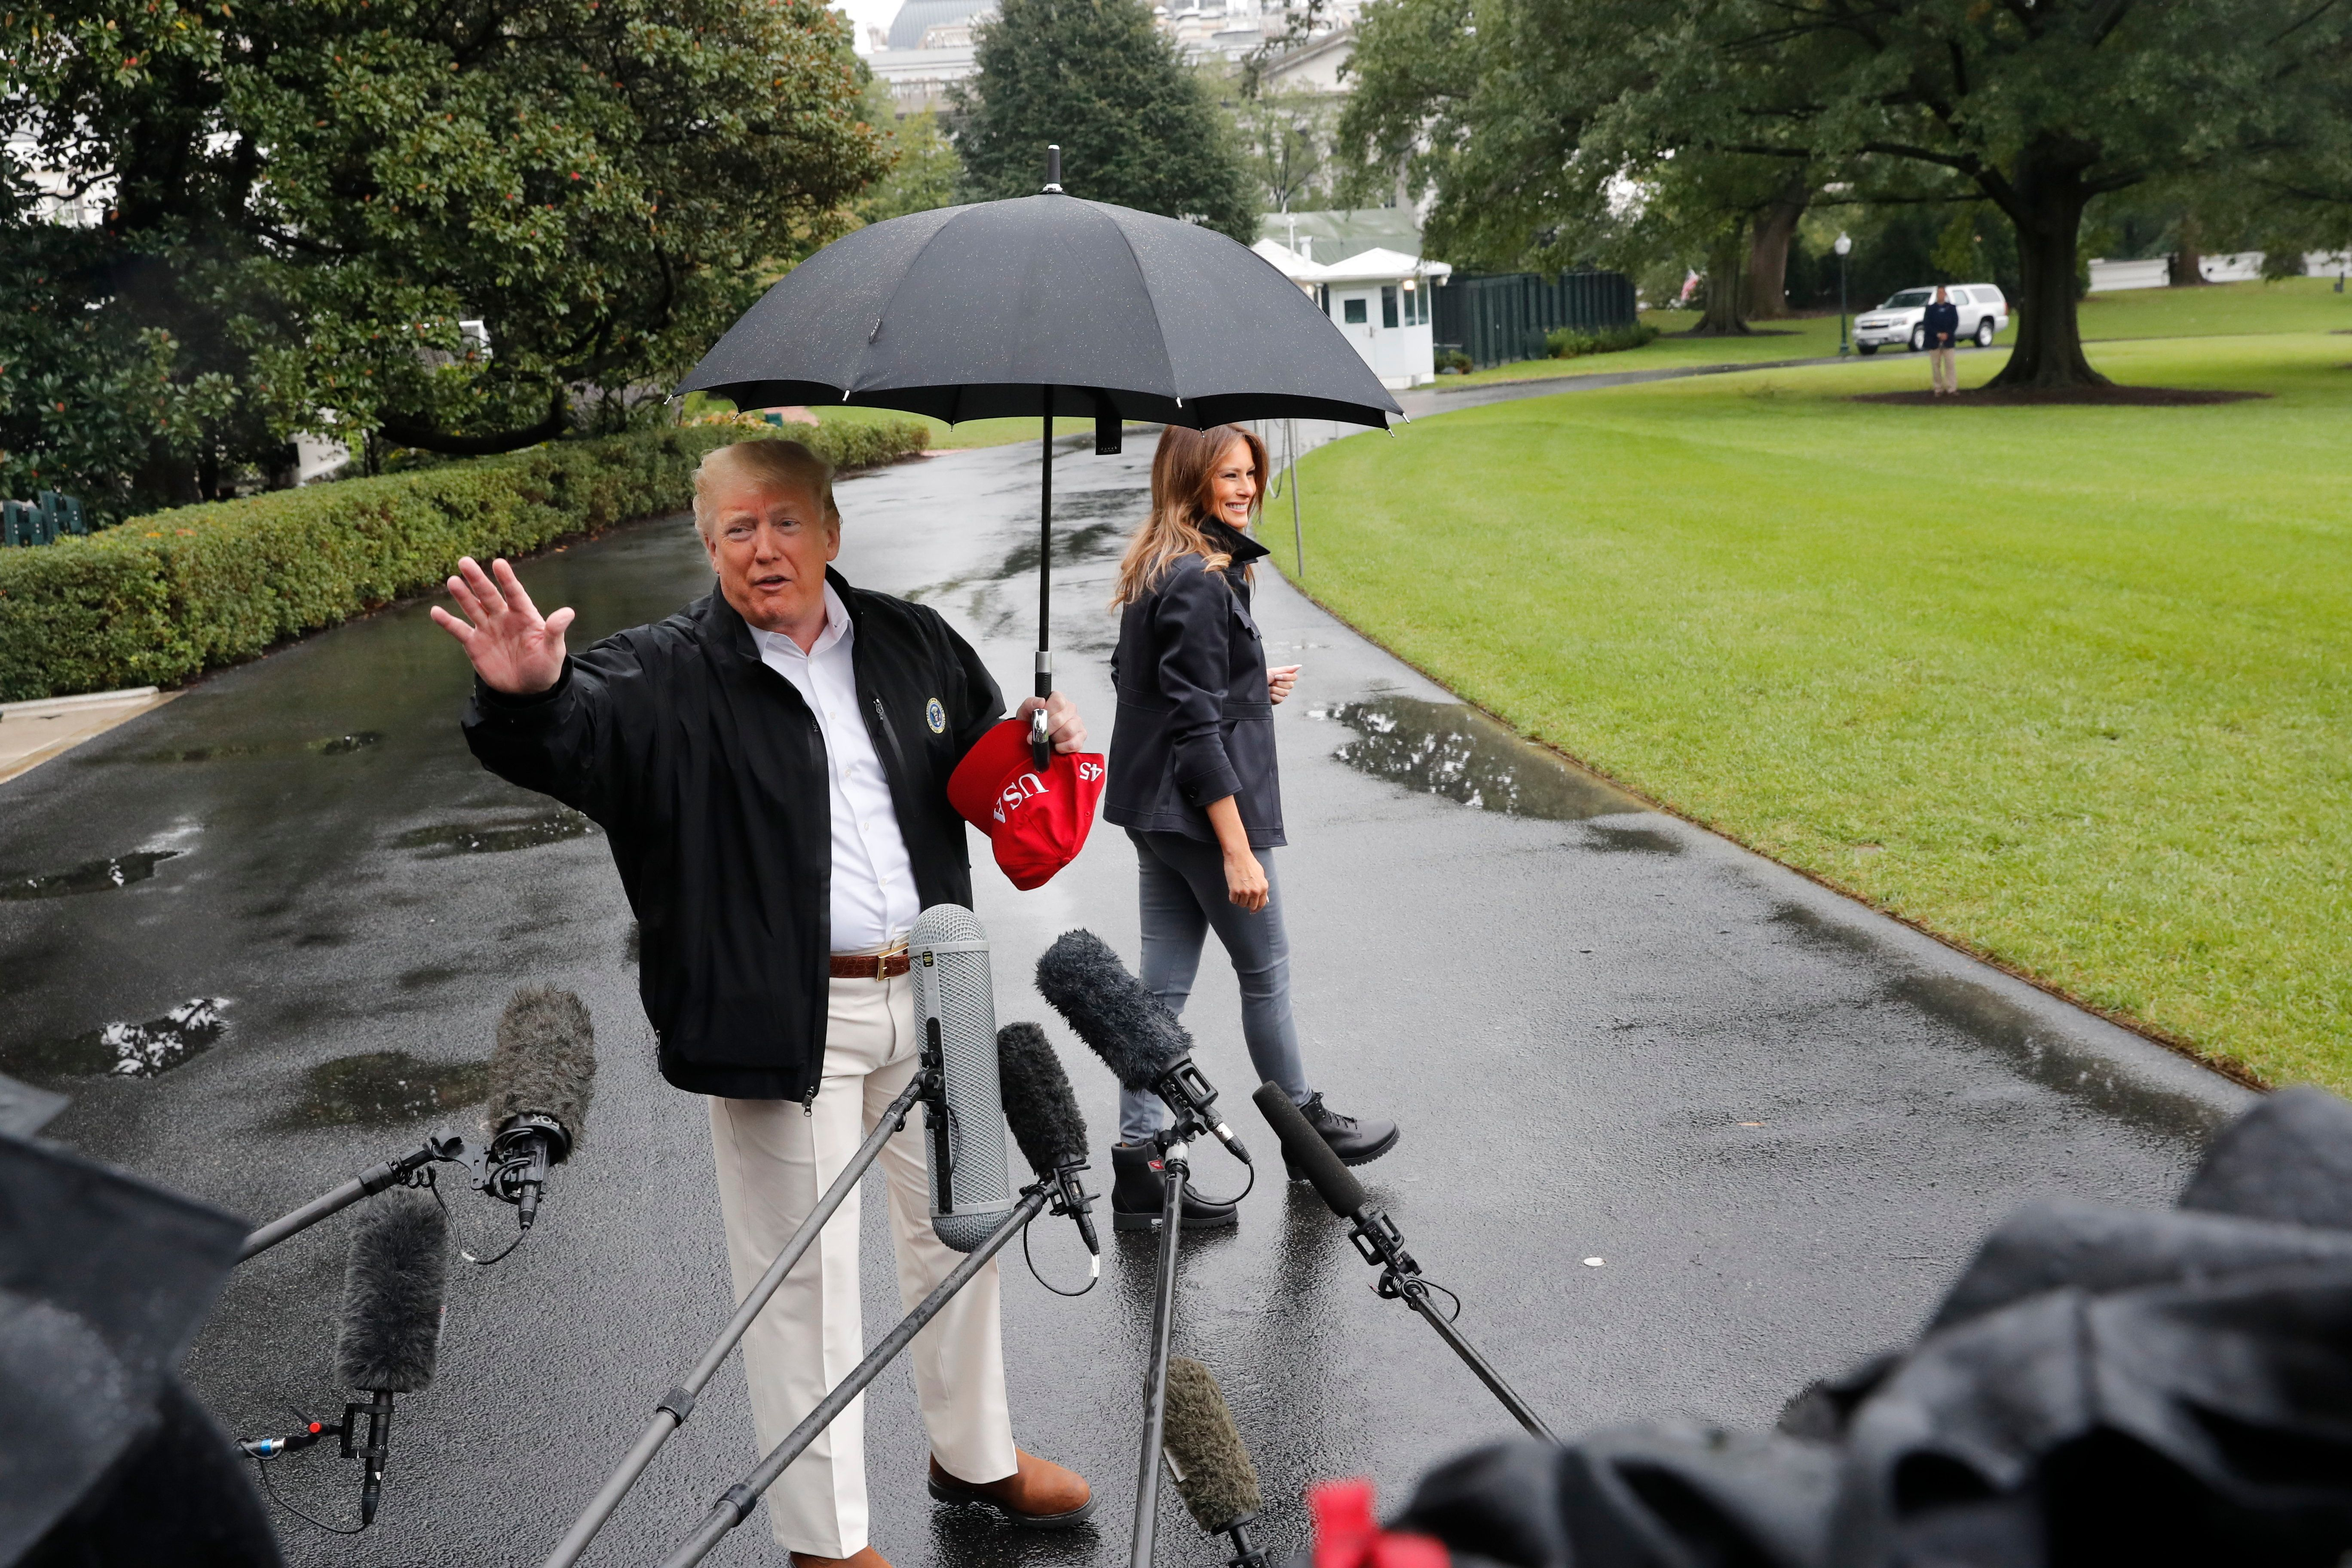 President Donald Trump and first lady Melania Trump walk across the South Lawn of the White House in Washington, Monday, Oct. 15, 2018, to board Marine One helicopter for a short trip to Andrews Air Force Base, Md., en route to Florida to tour areas the devastation left behind from Hurricane Michael last week. (AP Photo/Pablo Martinez Monsivais)